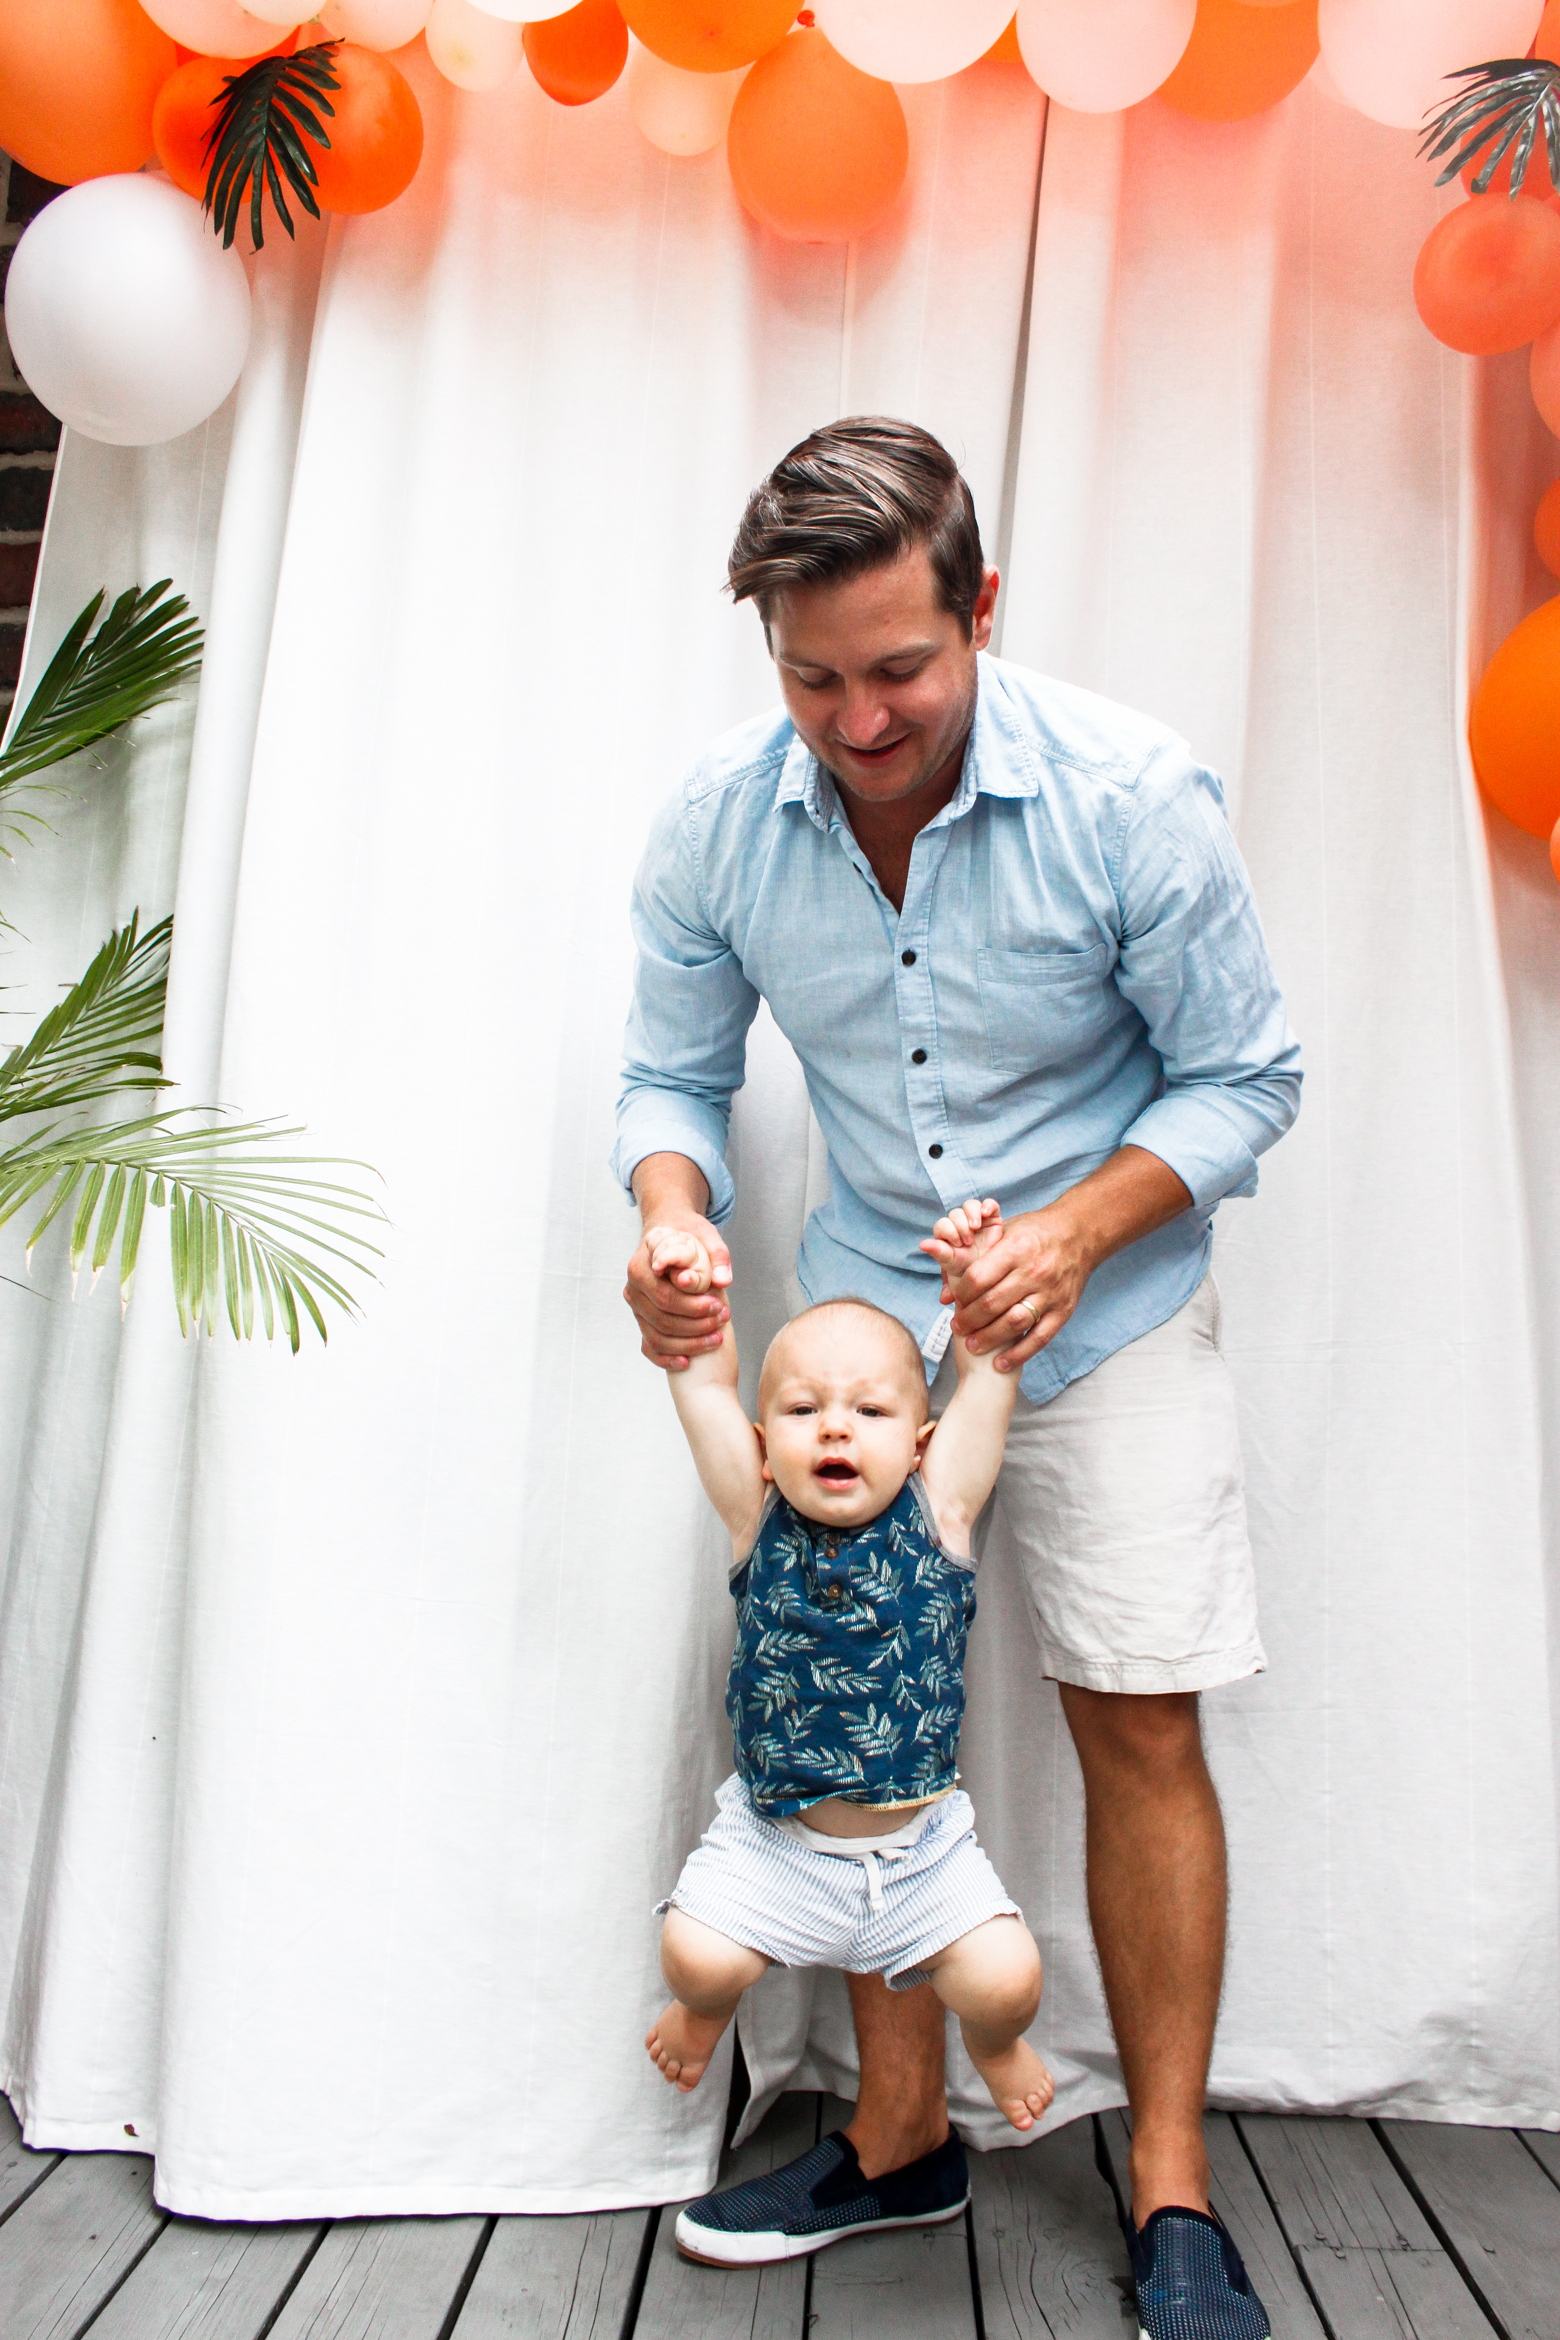 James Tropical Themed St Birthday Party Meg McMillin - Dad entertains 5 kids